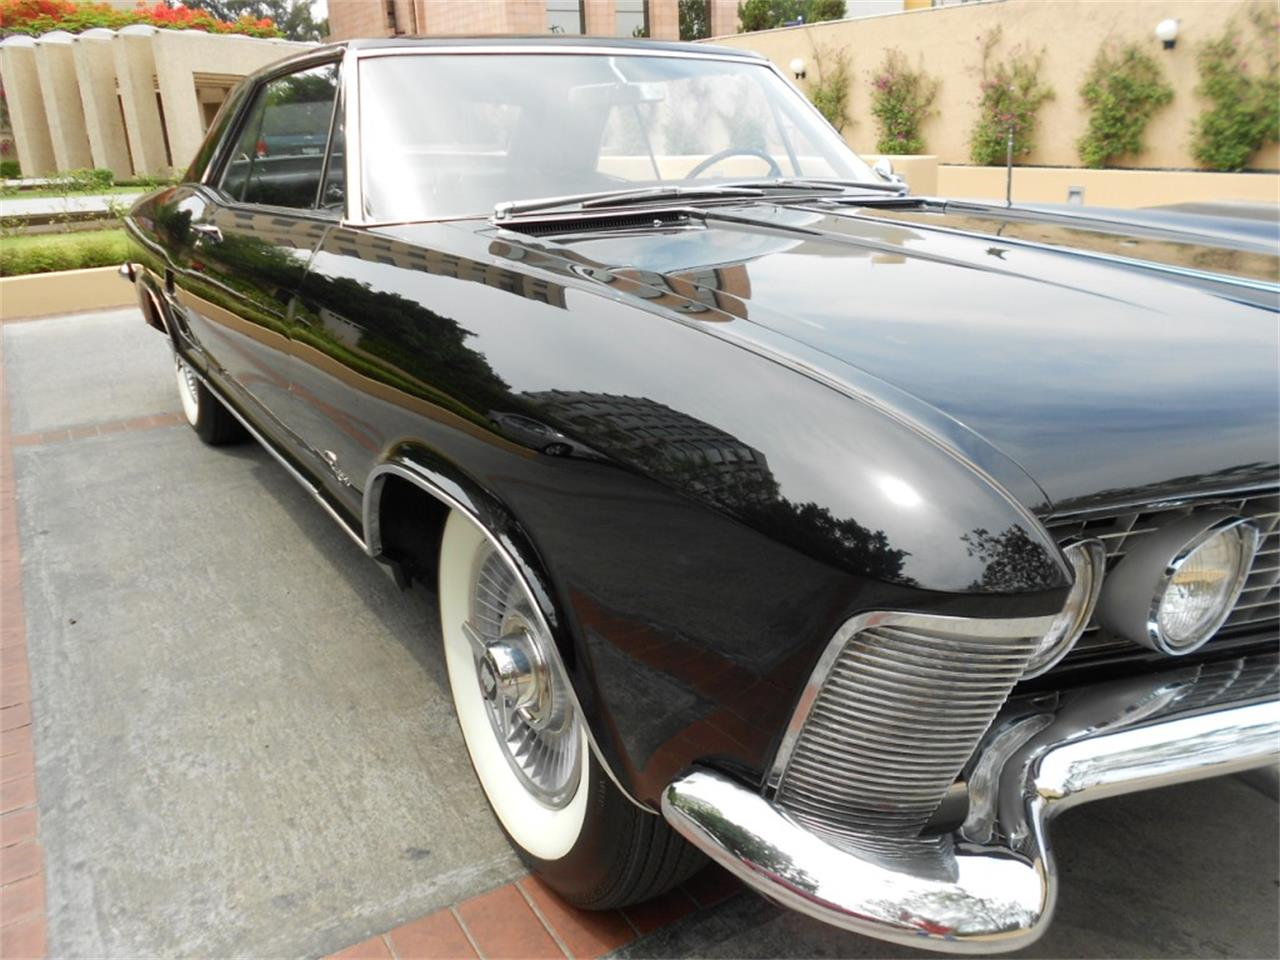 Large Picture of 1963 Buick Riviera located in Austin Texas - $25,000.00 Offered by a Private Seller - Q8L8